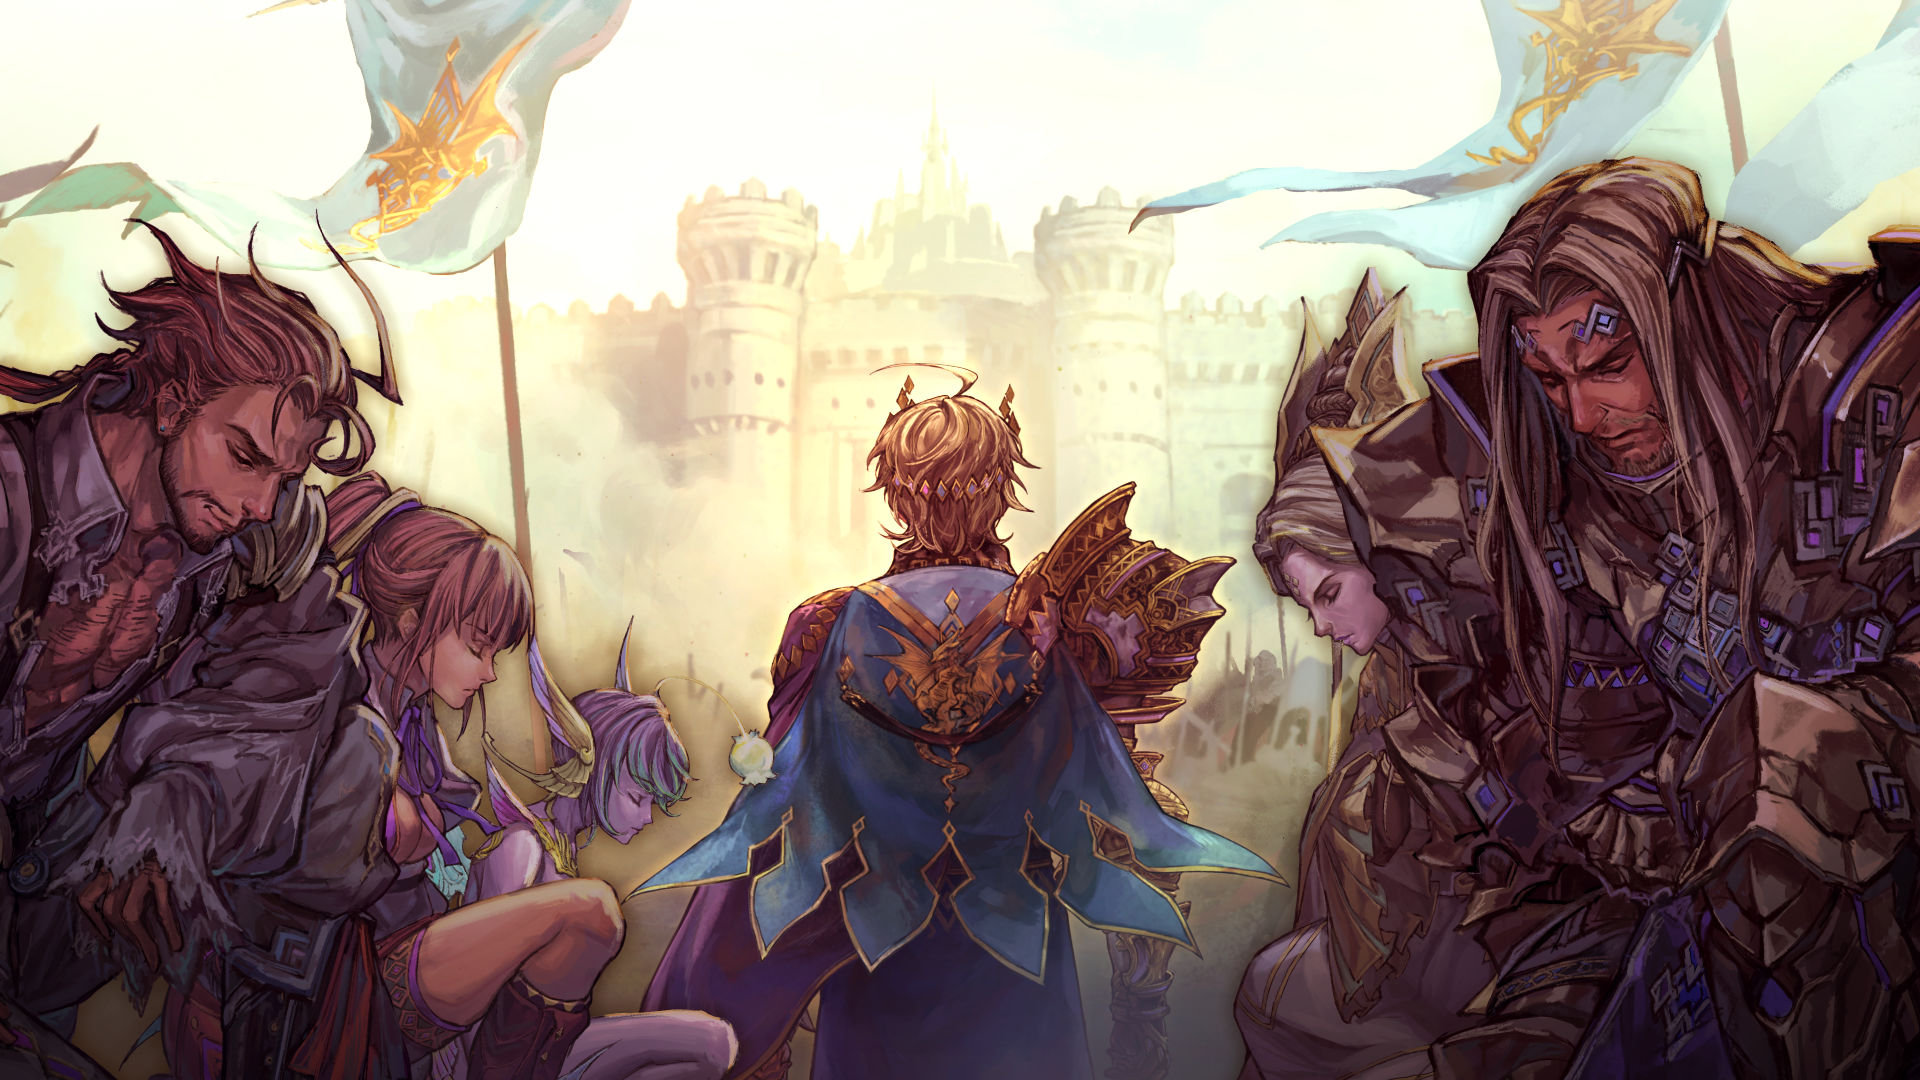 Monarch looking at a castle with others kneeling nearby